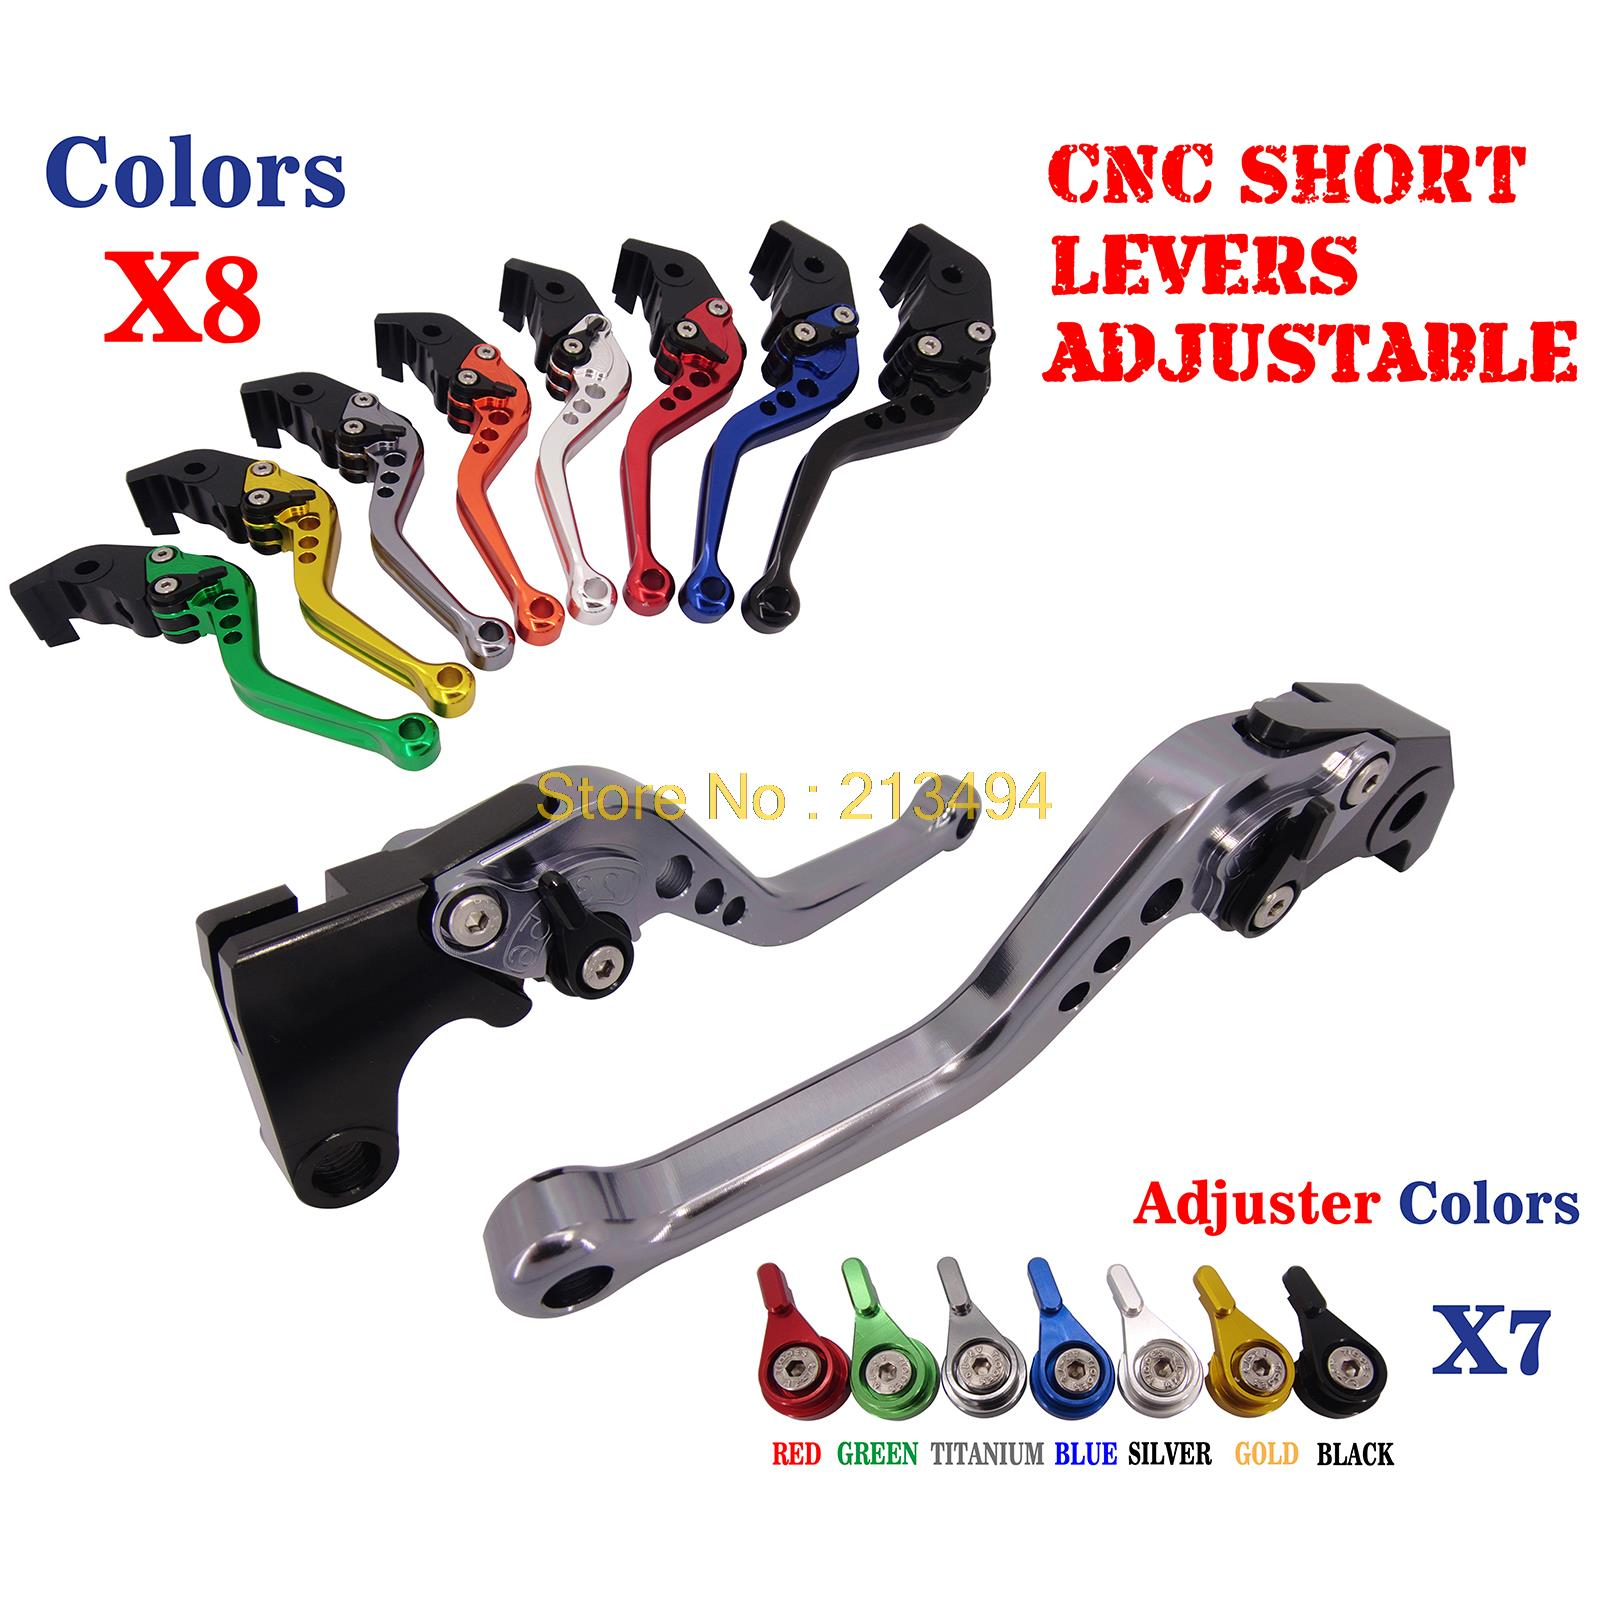 NICECNC Short Brake Clutch Levers For Yamaha FZ1 FZ6 FAZER FZ6R FZ8 XJ6 Diversion XSR700 XSR900 ABS motorcycle adjustable cnc aluminum brakes clutch levers set motorbike brake for yamaha fz1 fazer 2006 2013 xj6 diversion 09 15